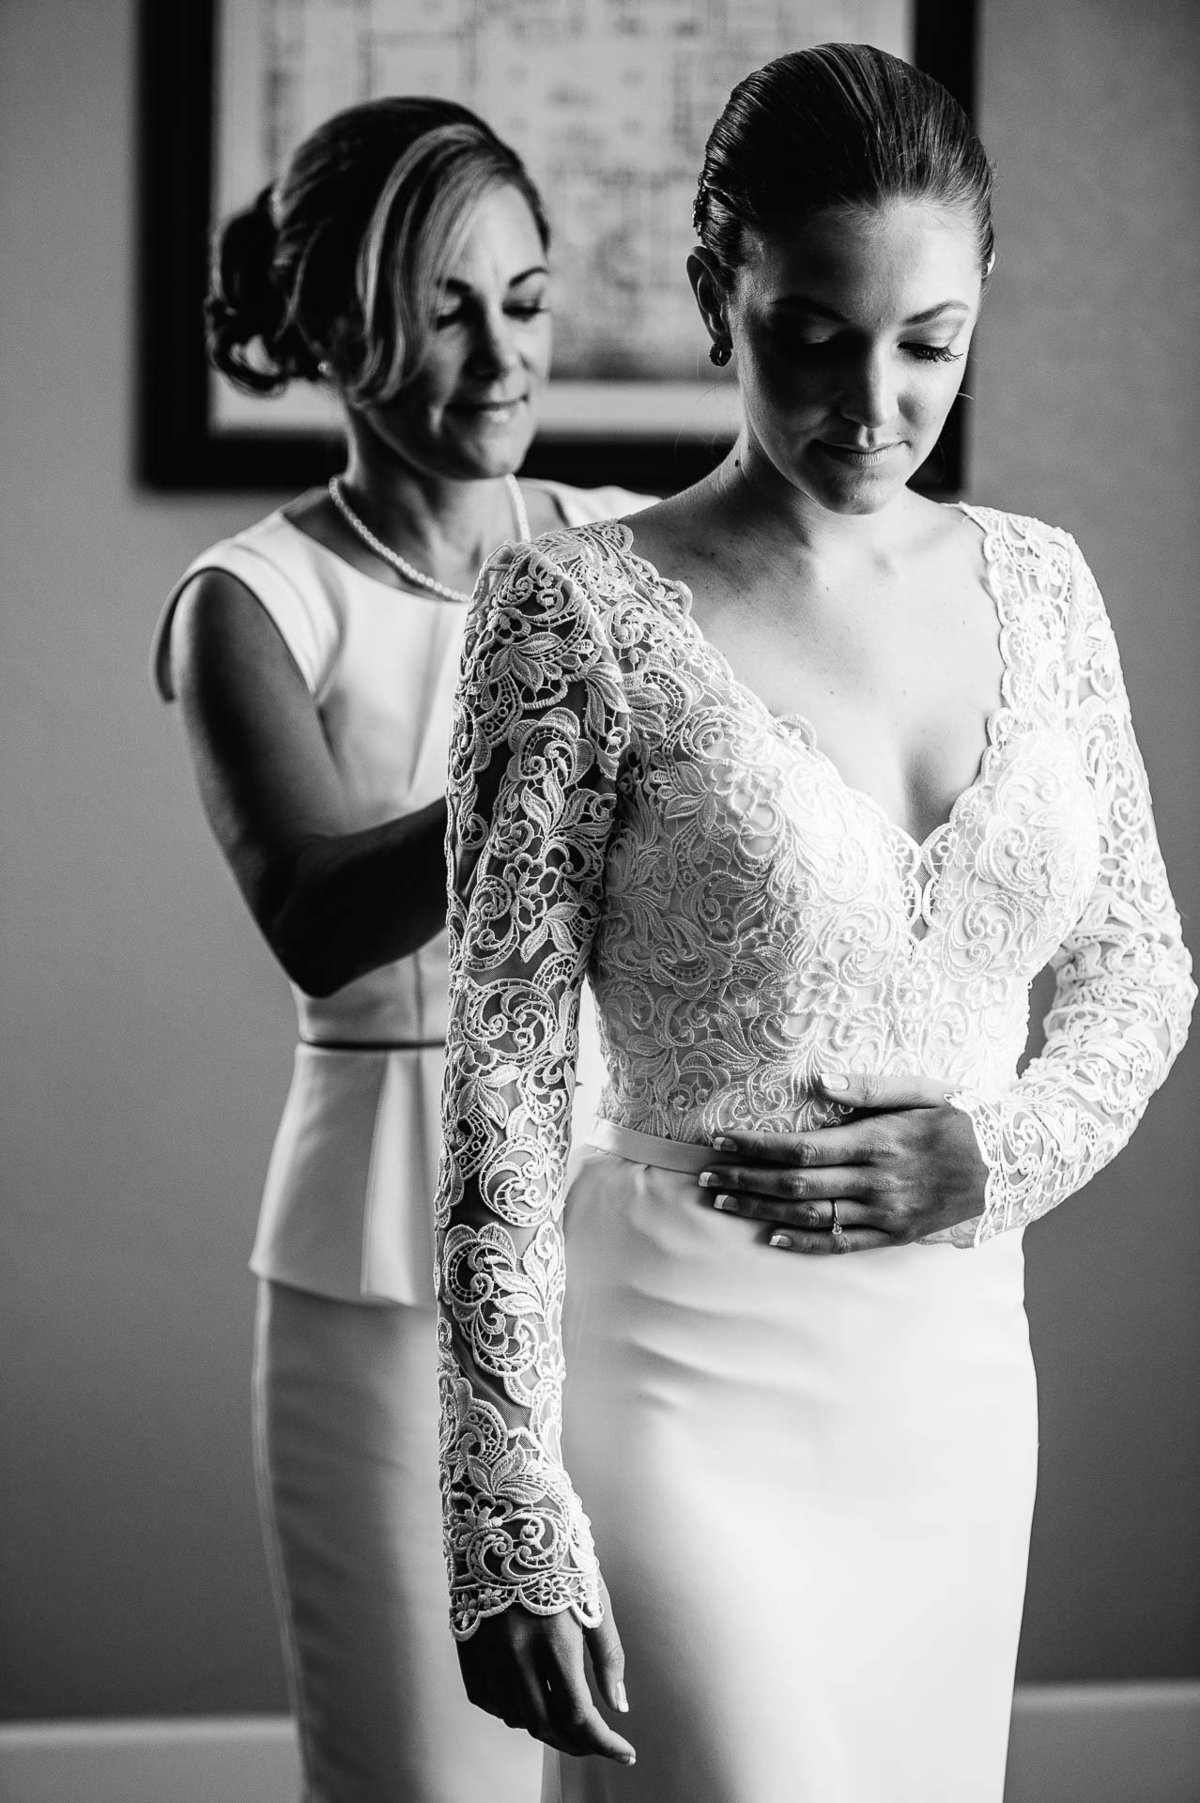 WEDDING AT HOTEL GADSDEN IN DOUGLAS ARIZONA-wedding-photography-stephane-lemaire_20